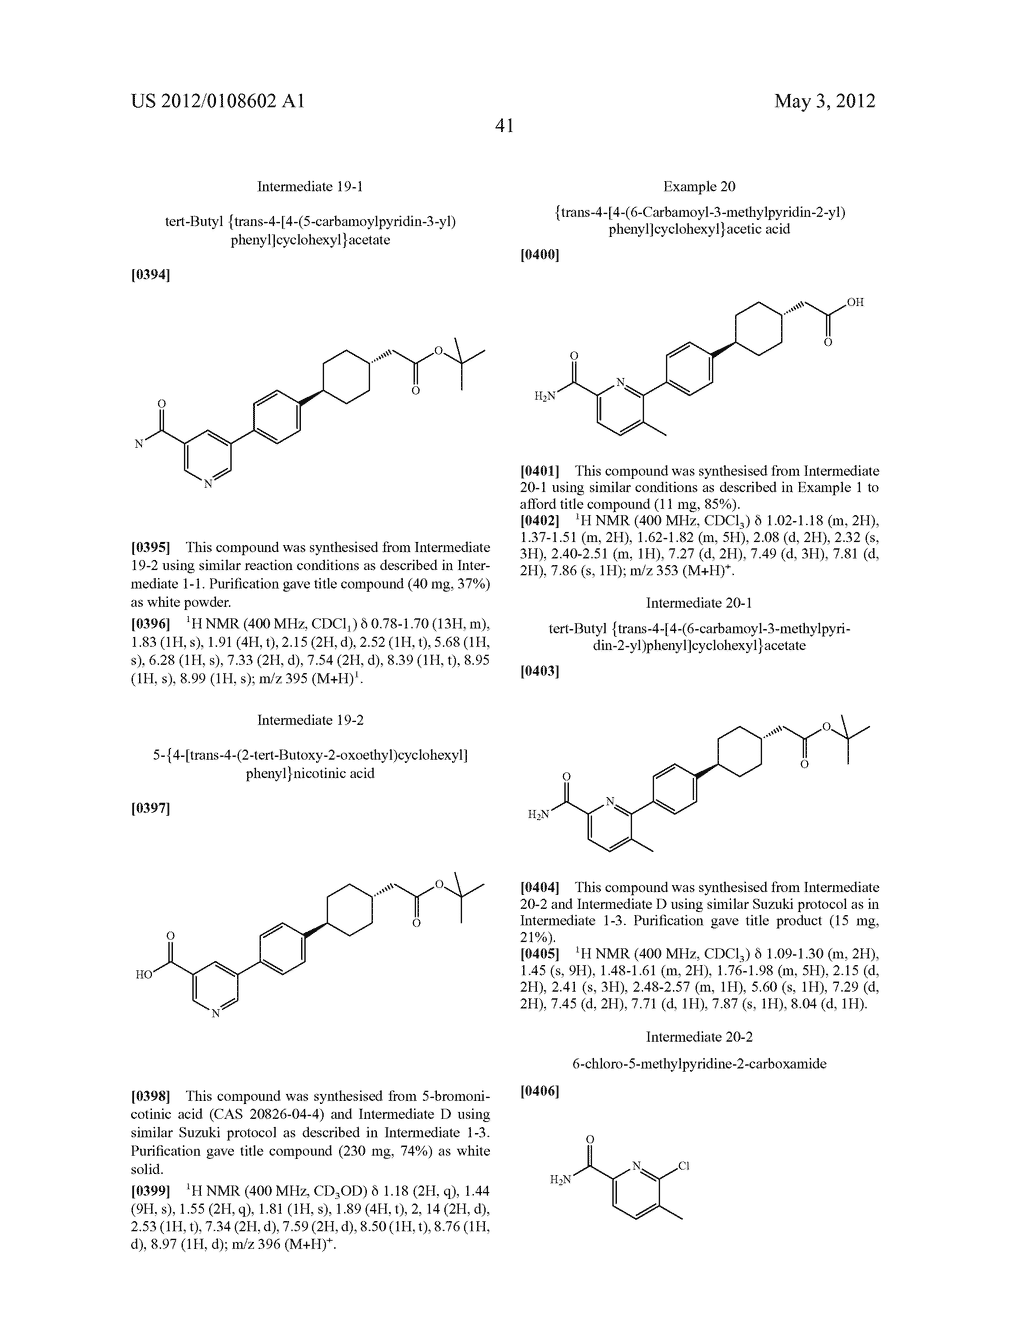 Carbamoyl Compounds as DGAT1 Inhibitors 190 - diagram, schematic, and image 42